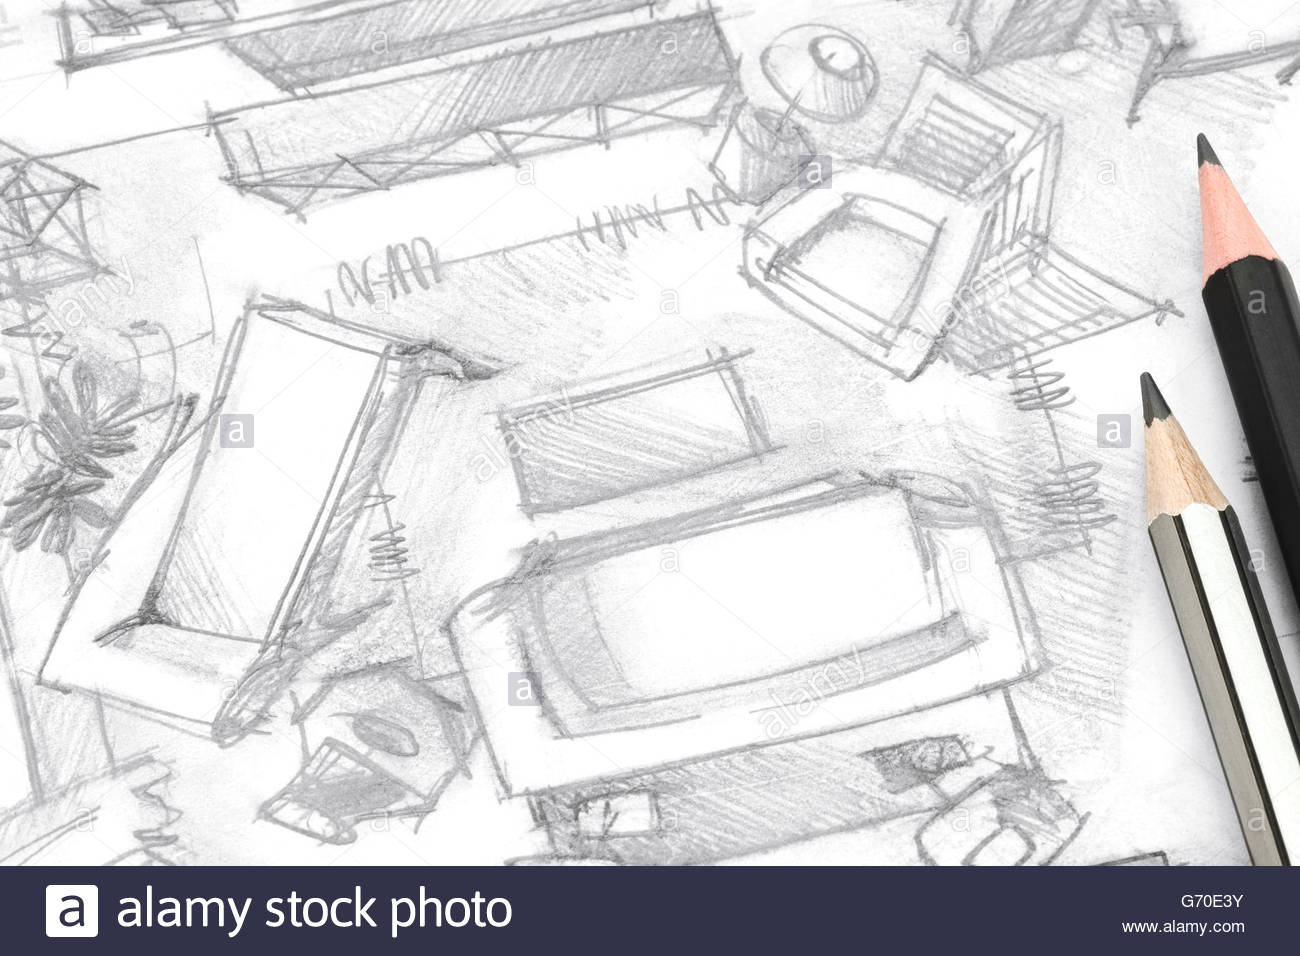 1300x956 Top View Living Room Freehand Sketch Architectural Drawing